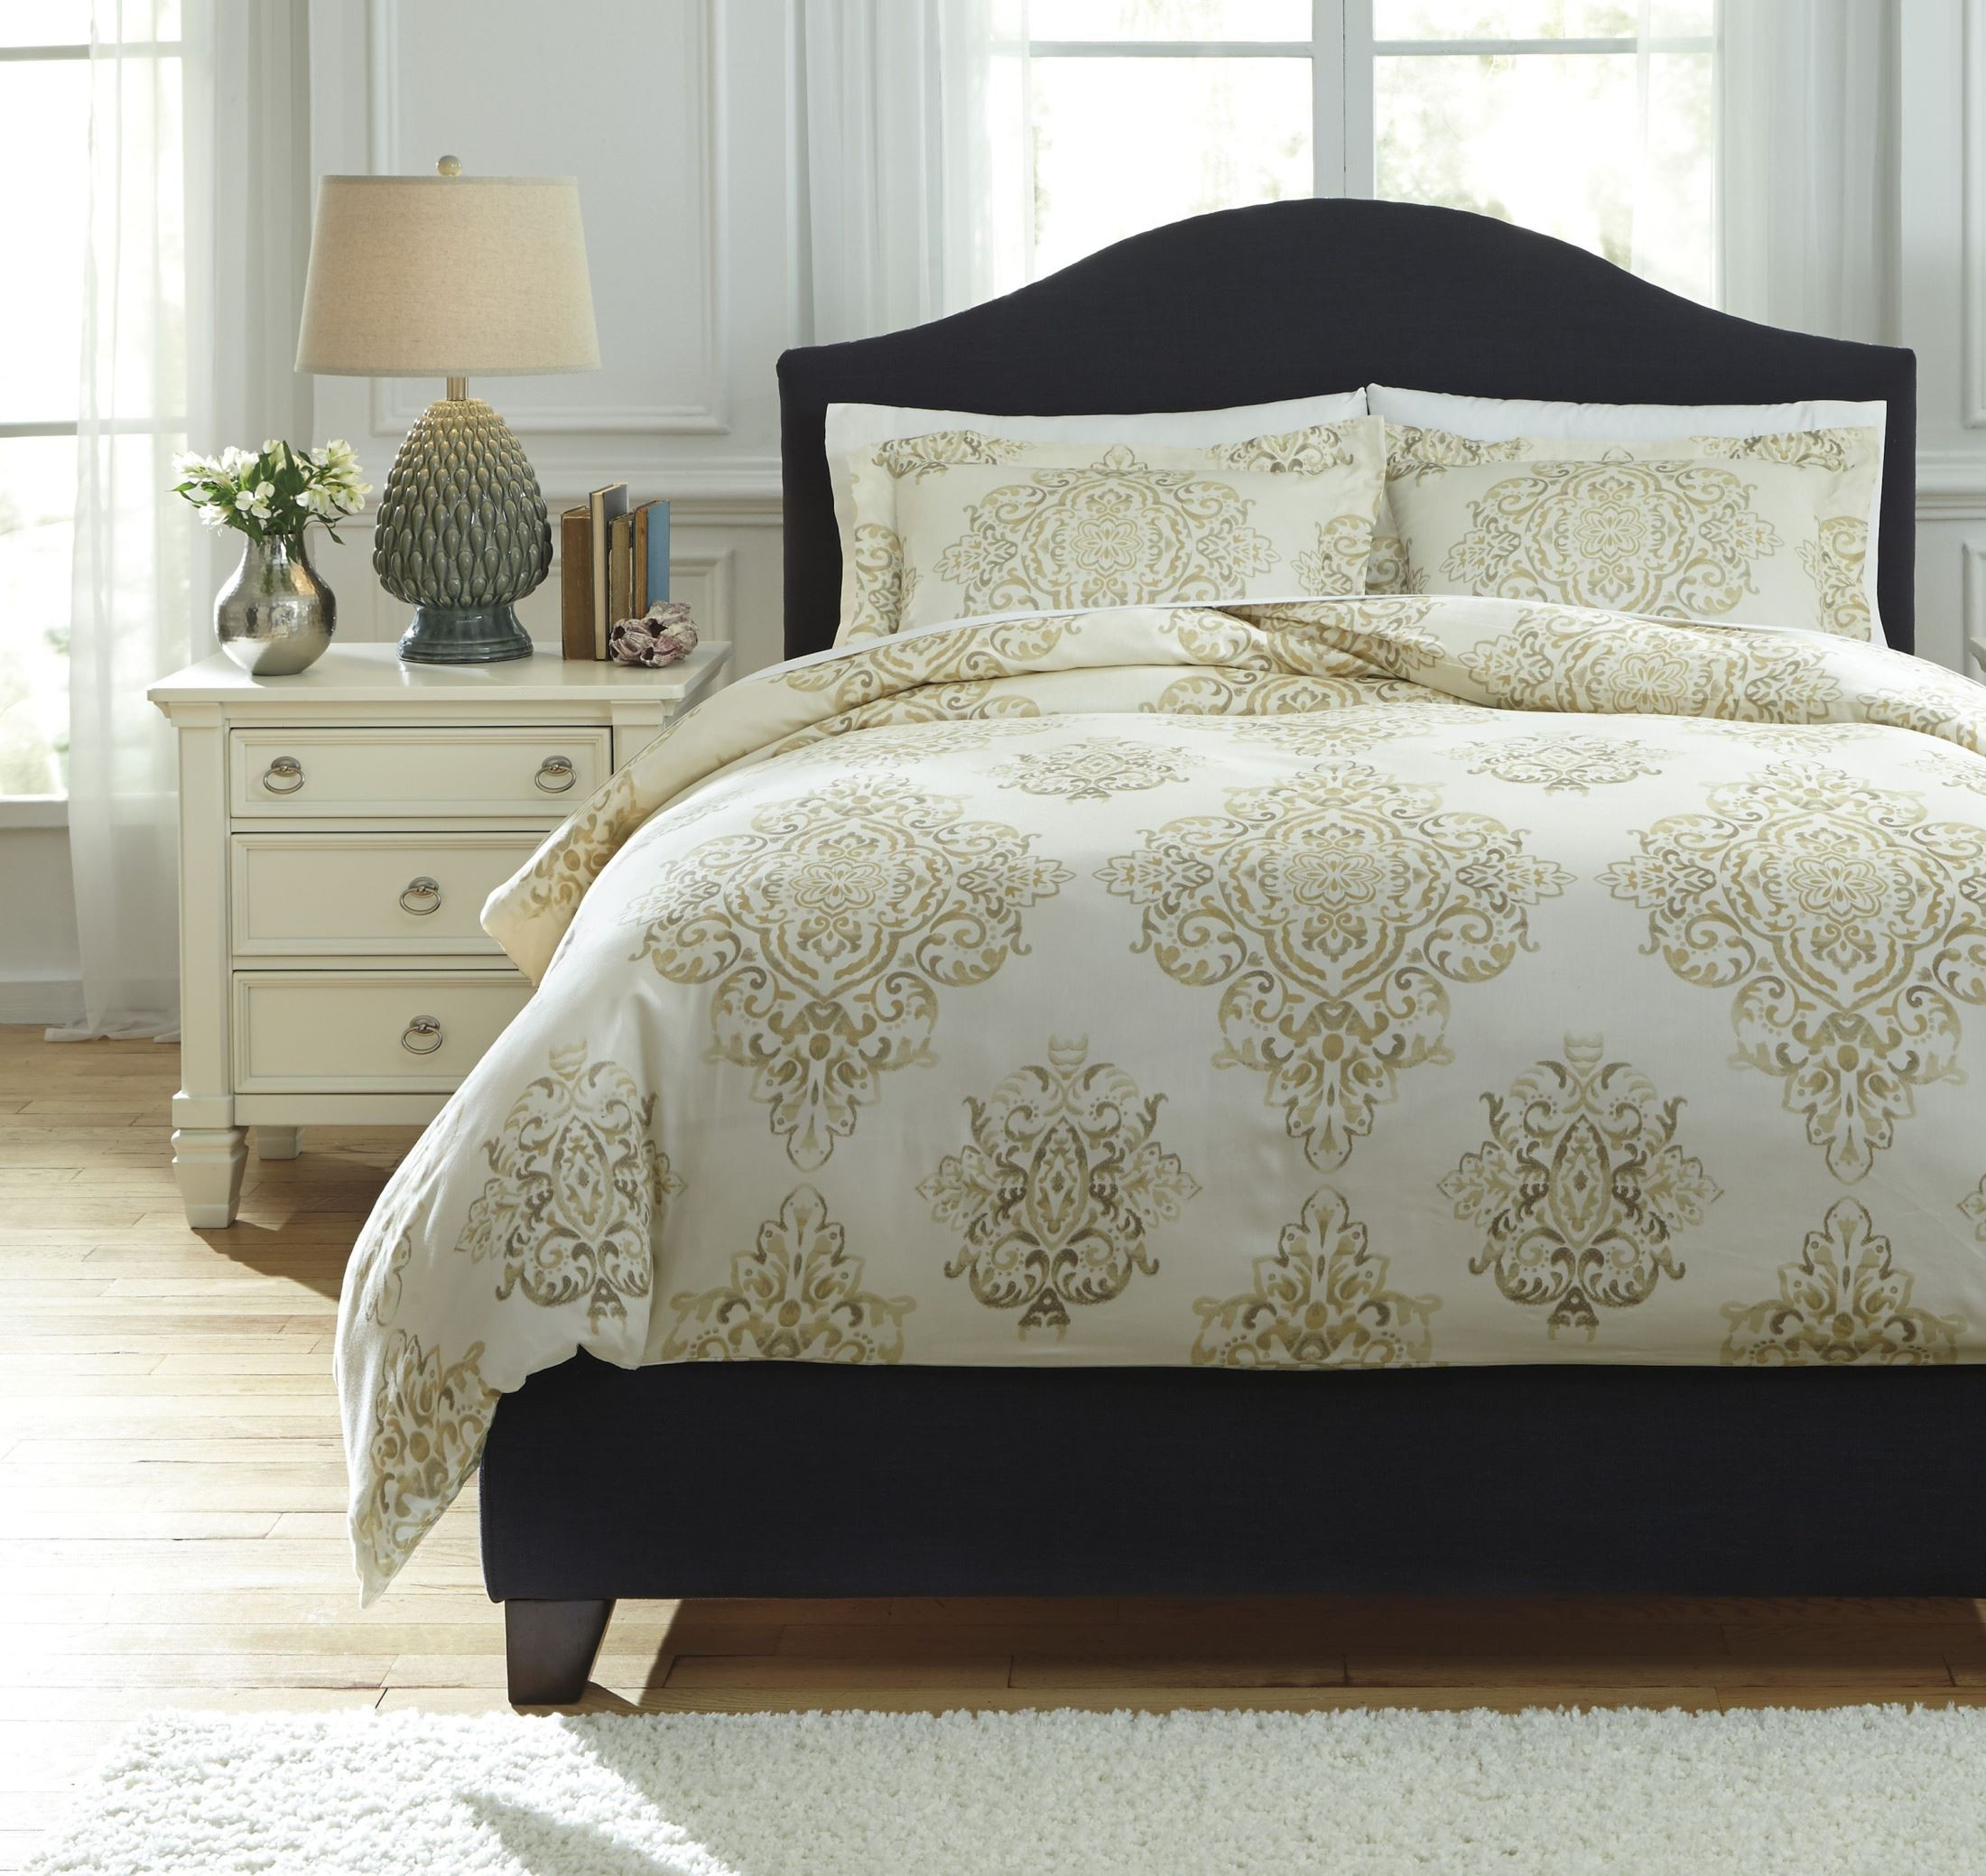 Shop our best selection of Duvet Covers to reflect your style and inspire your home. Find the perfect furniture & decor for your bedroom or bathroom at Hayneedle, where you can buy online while you explore our room designs and curated looks for tips, ideas & inspiration to help you along the way.